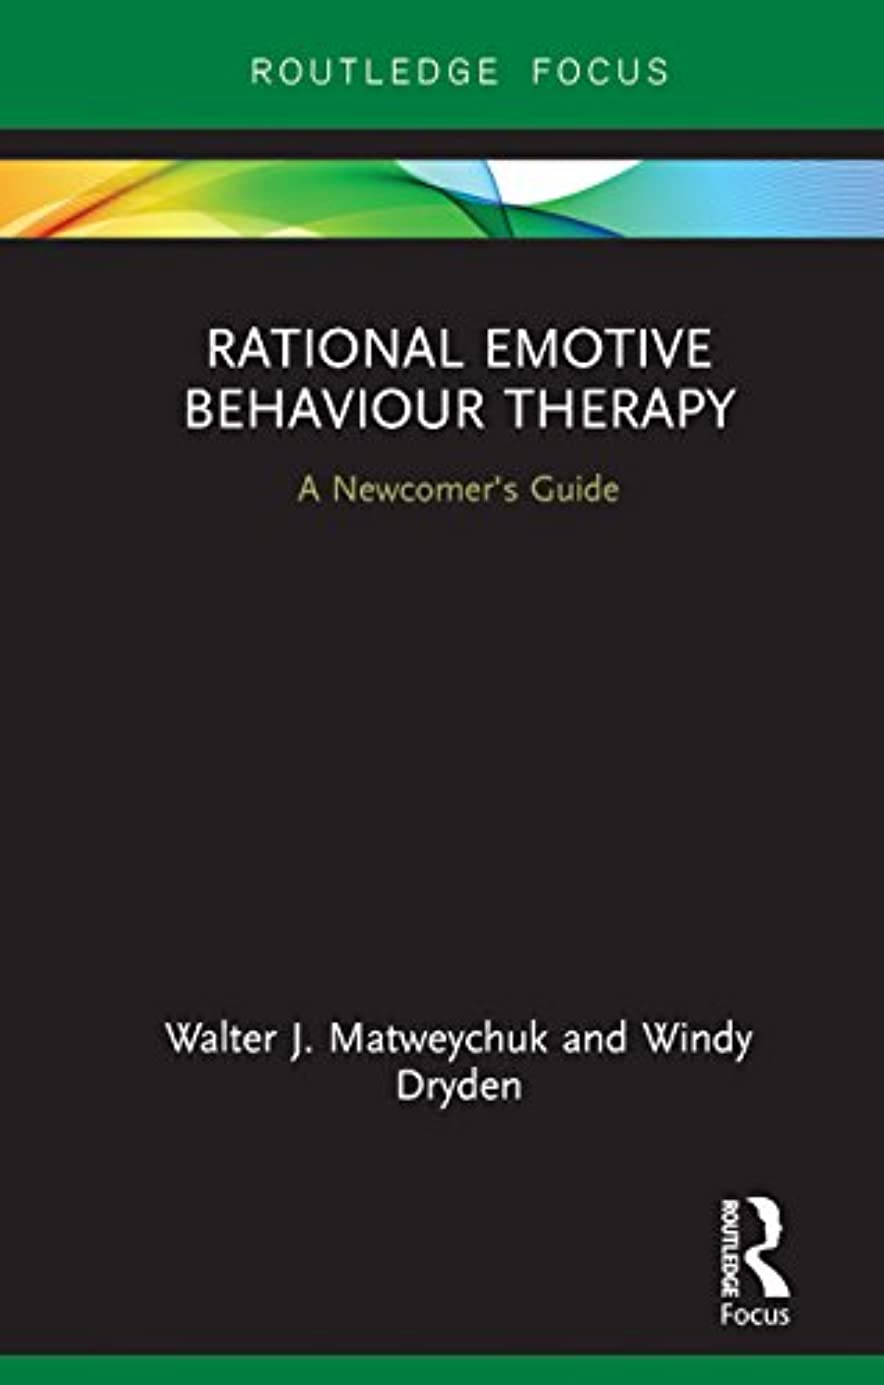 エンディング鈍いクラッシュRational Emotive Behaviour Therapy: A Newcomer's Guide (Routledge Focus on Mental Health) (English Edition)